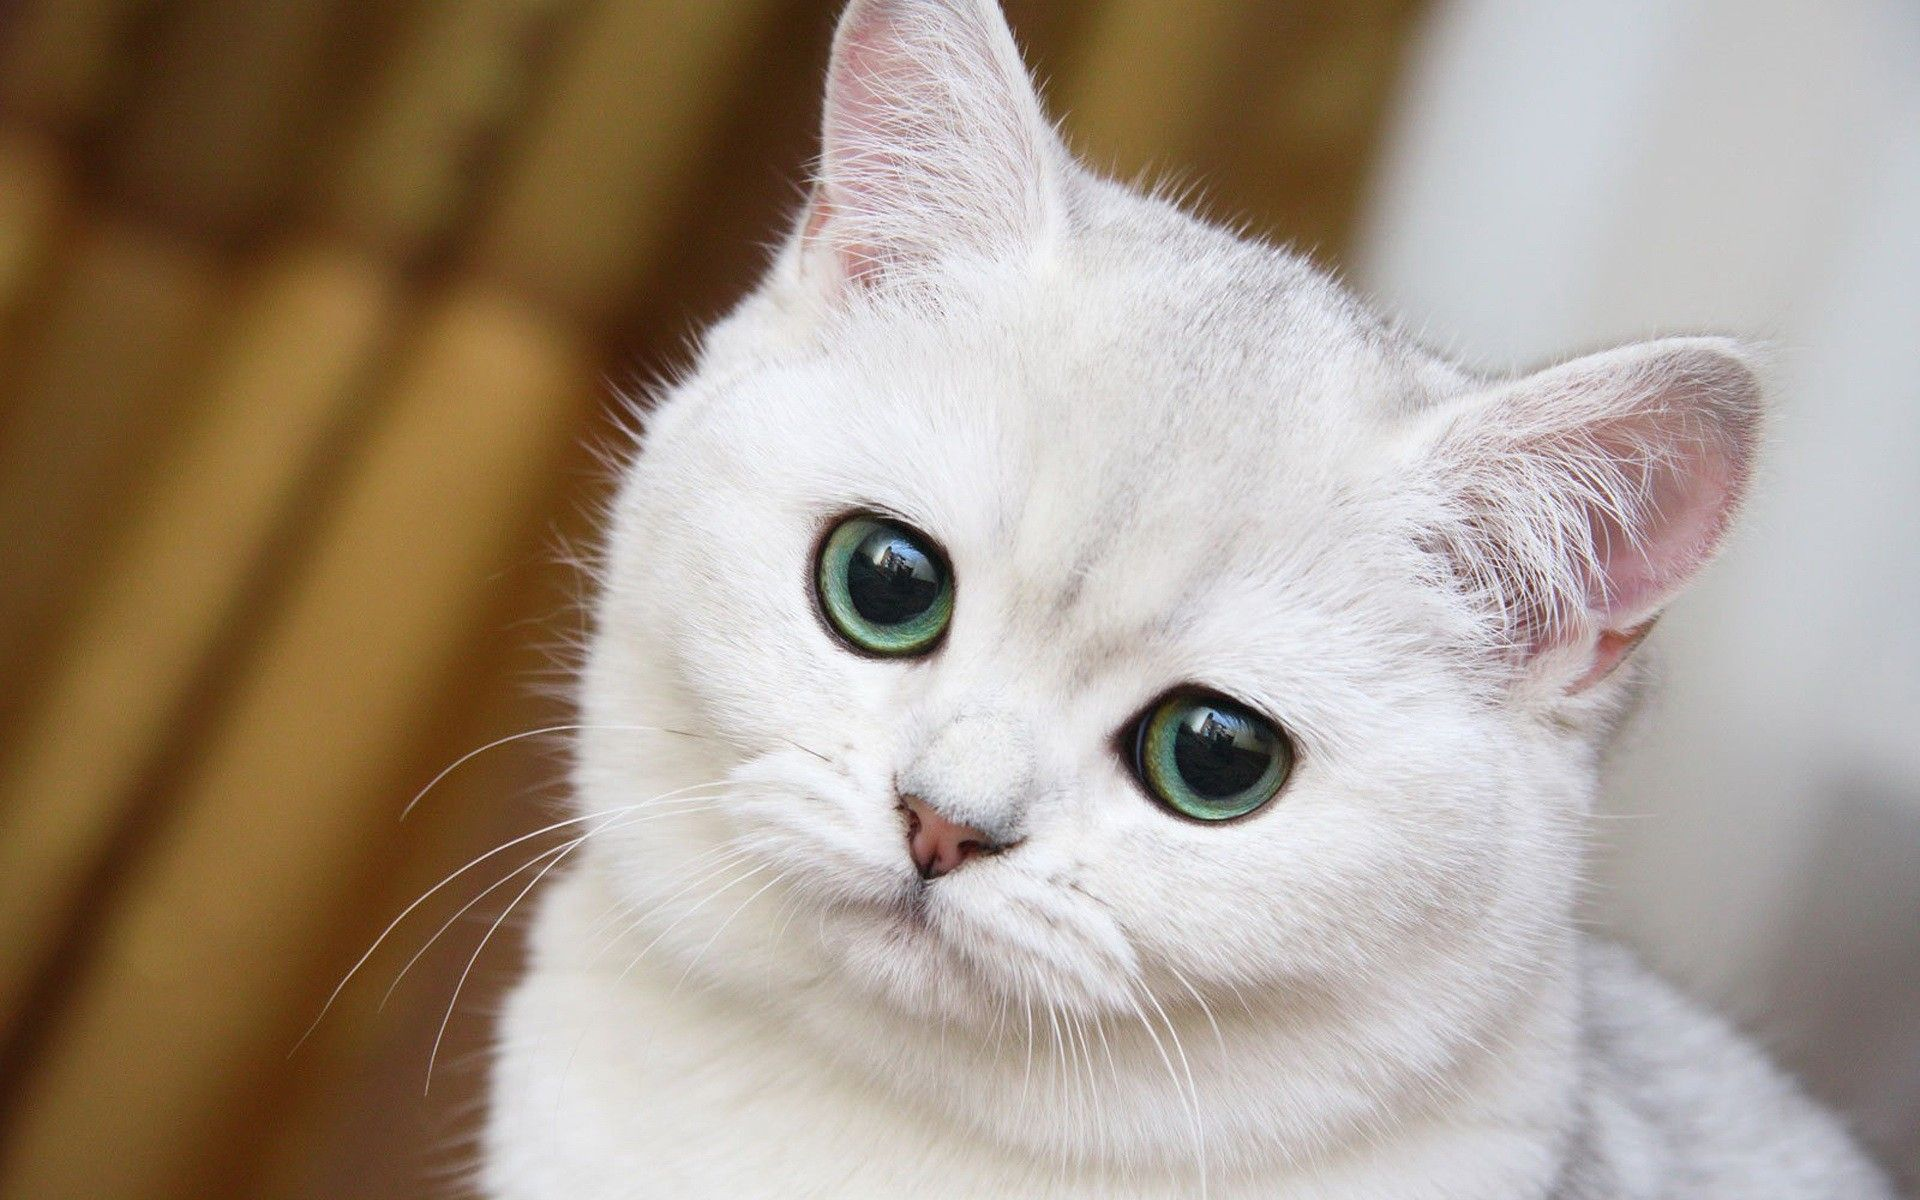 Wallpapers Chats Pack 003 Wallpapers Partage Chats Blancs Chat Blanc Animales